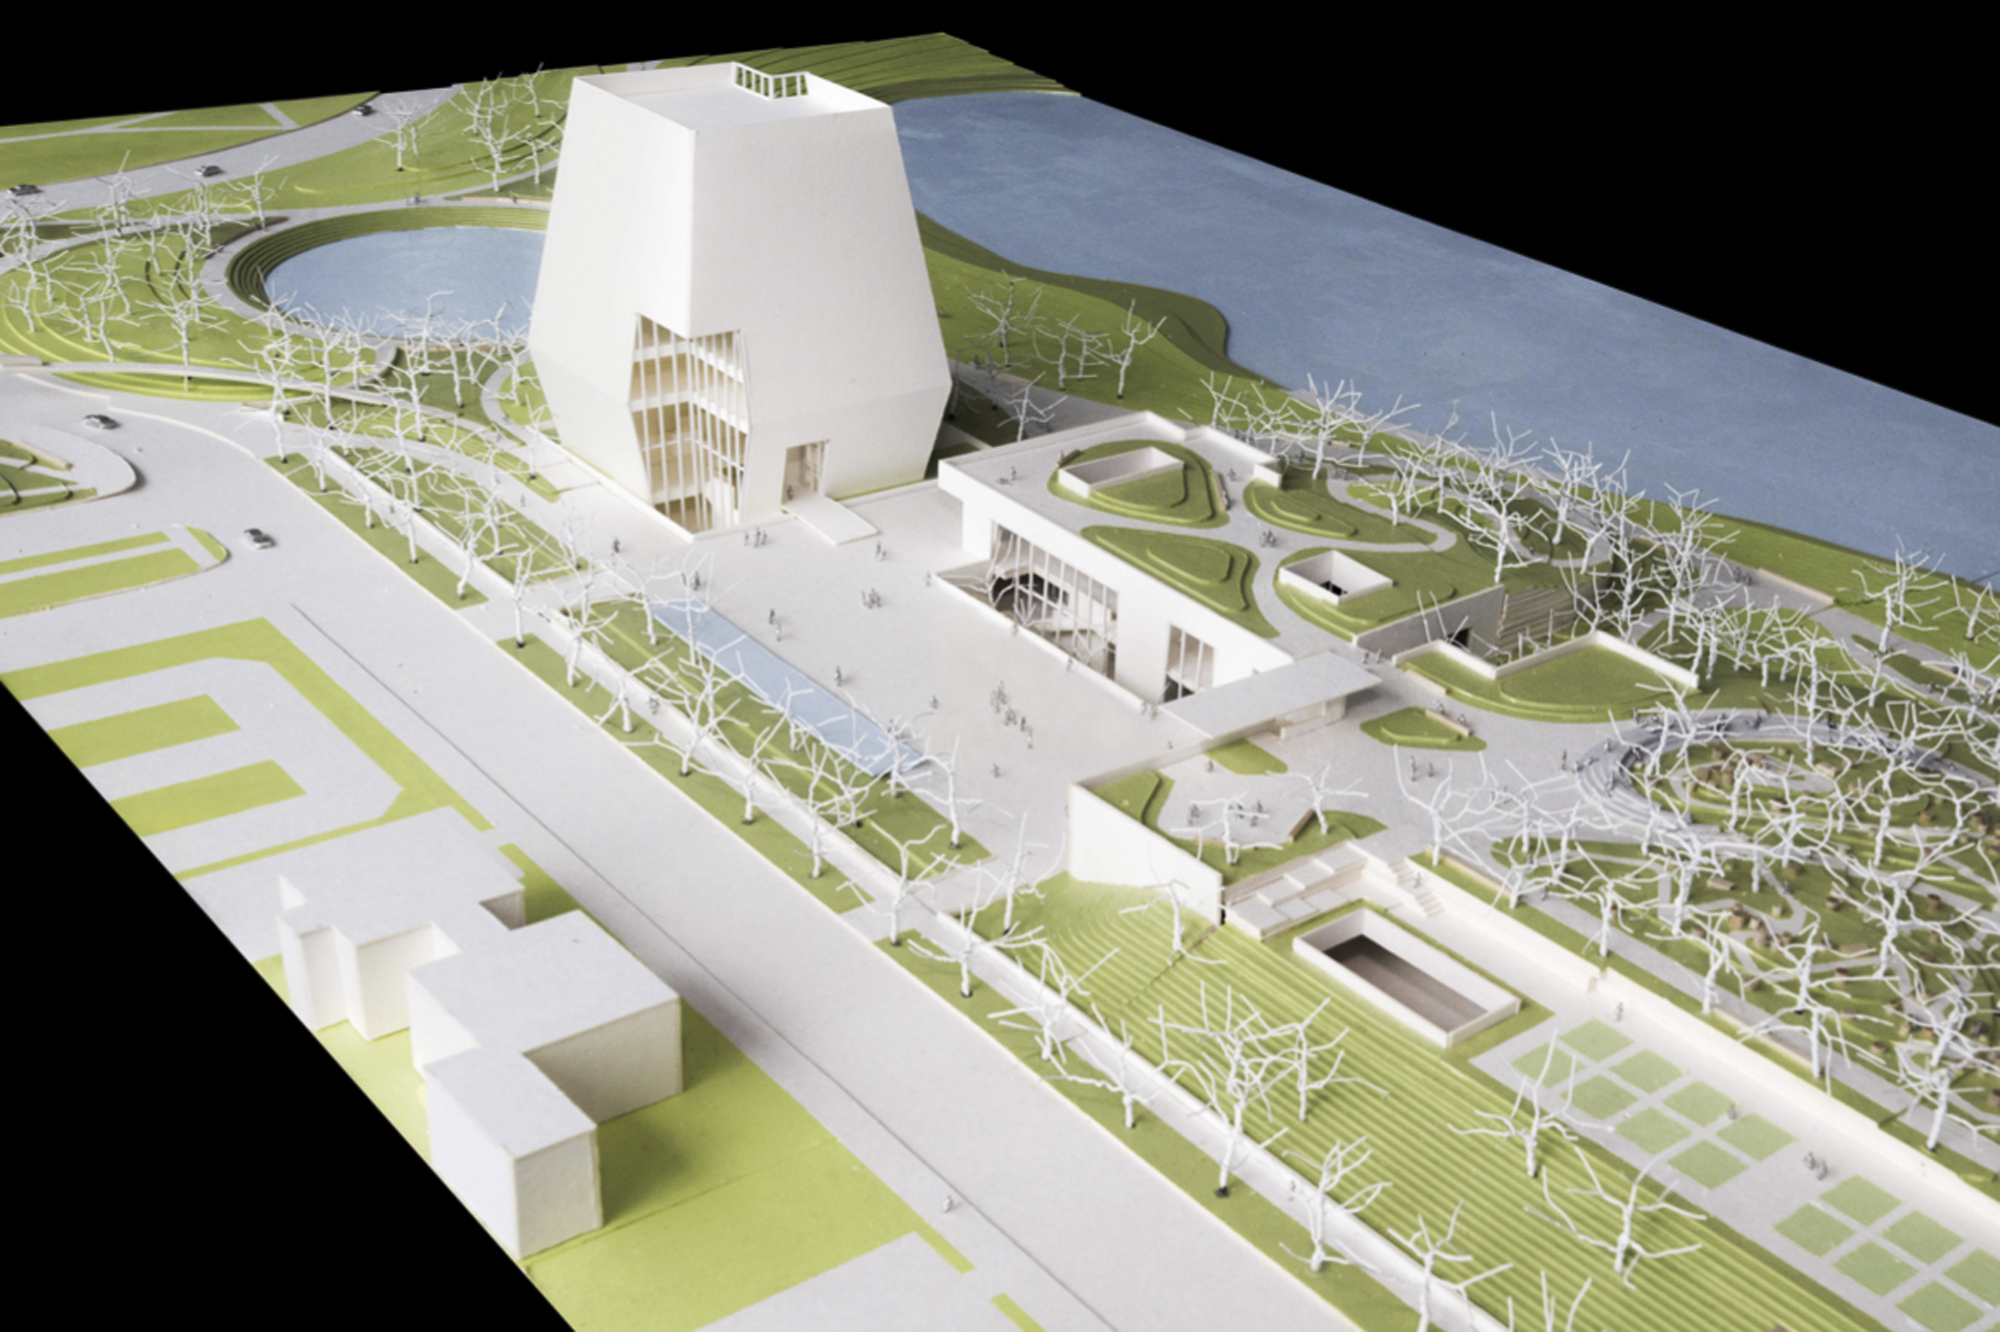 A model shows plans for the proposed Obama Presidential Center. This view looks north showing the museum, forum, and library.